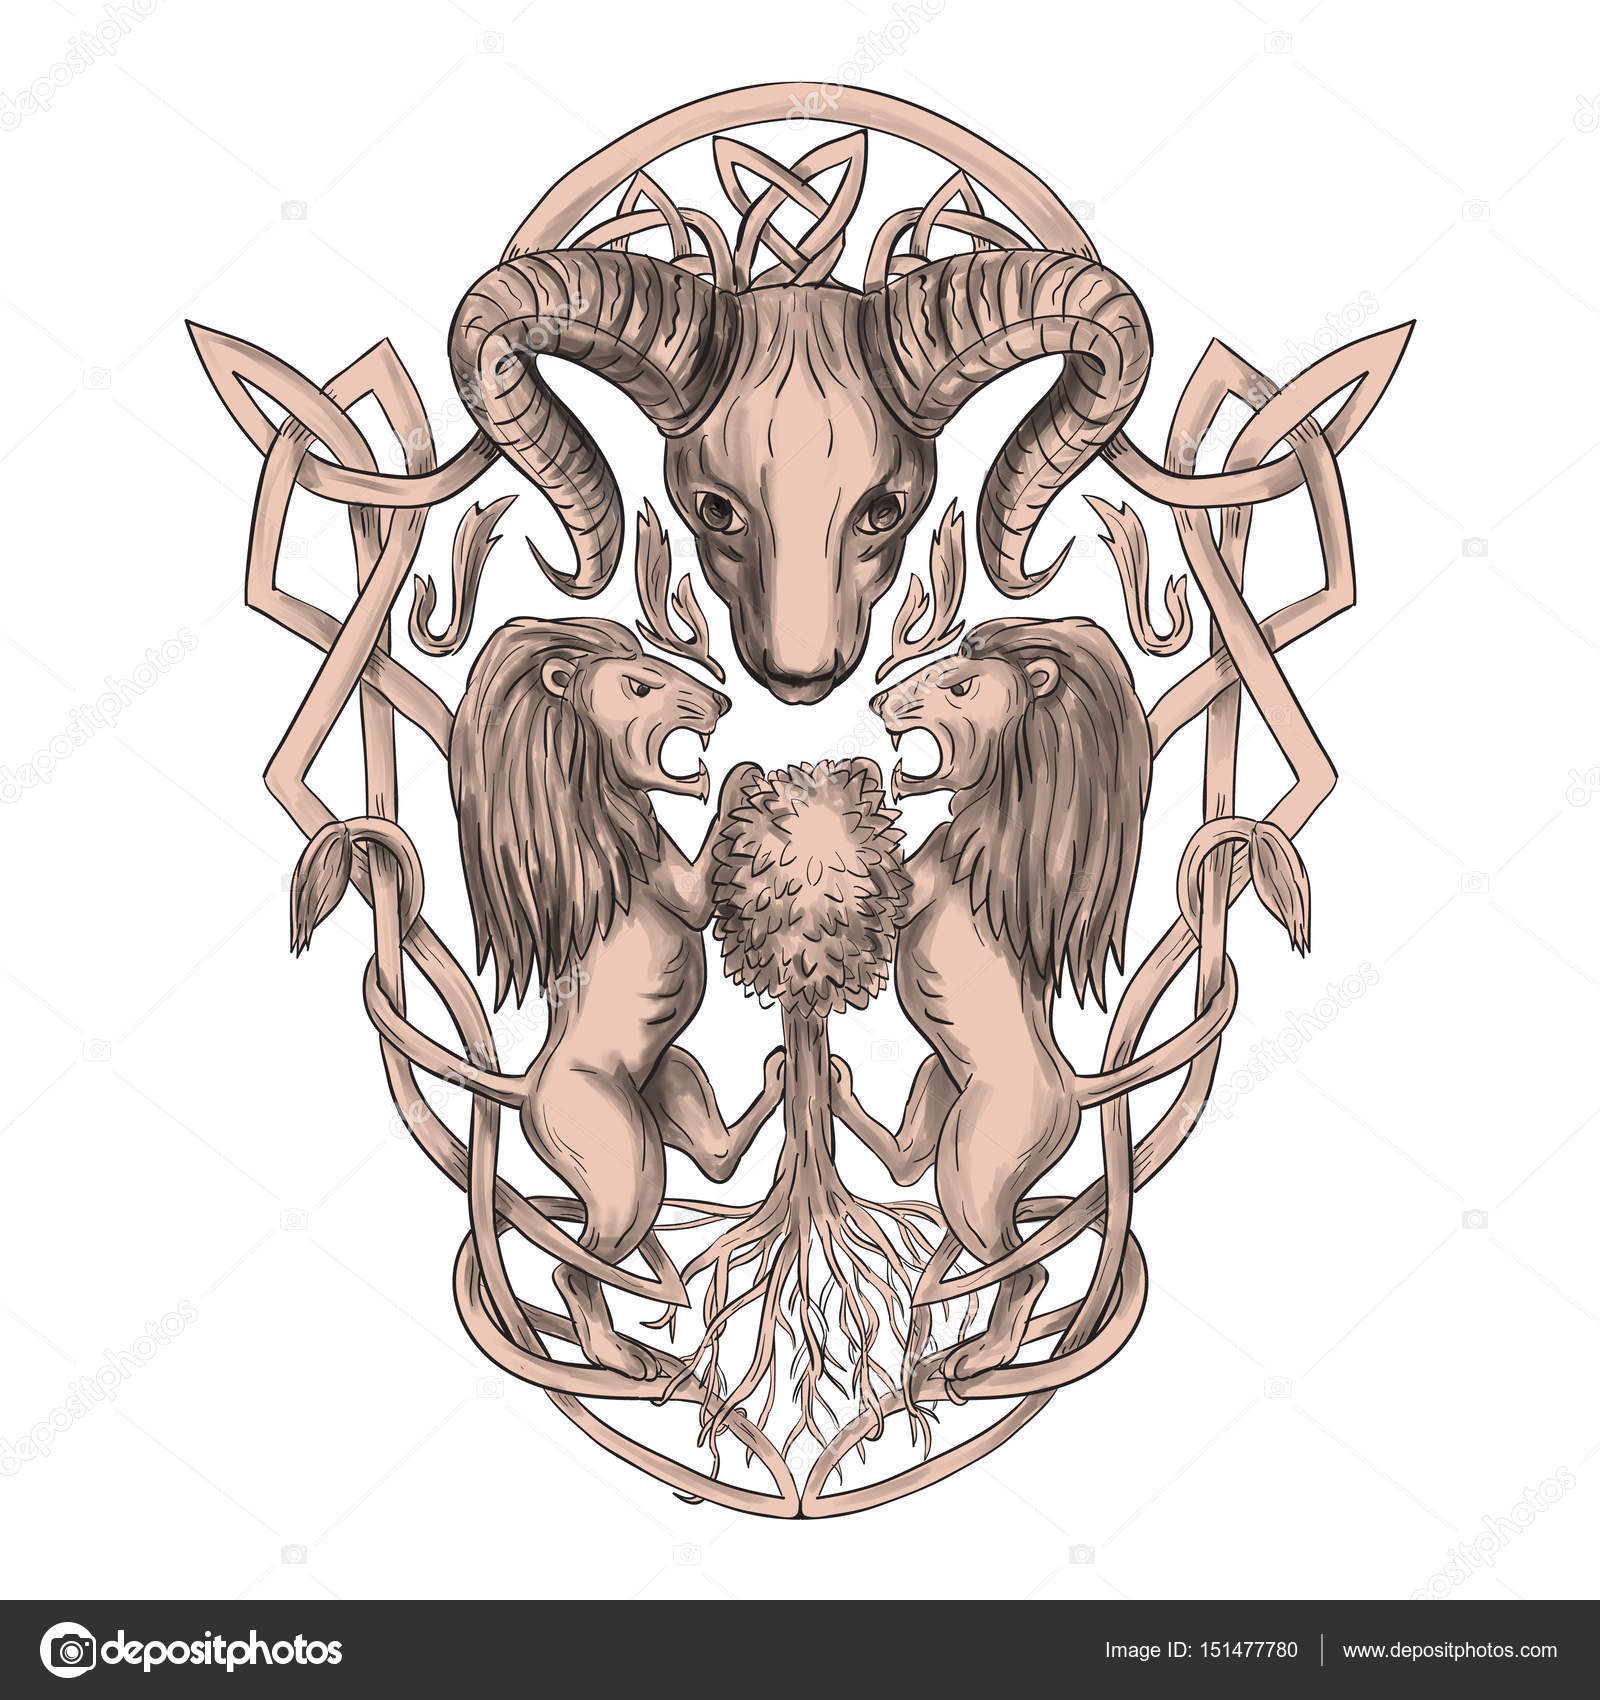 Bighorn sheep lion tree coat of arms celtic knotwork tattoo tattoo style illustration of stylized bighorn sheep head with two lion supporters climbing on tree with celtic knot called icovellavna plait work or buycottarizona Gallery